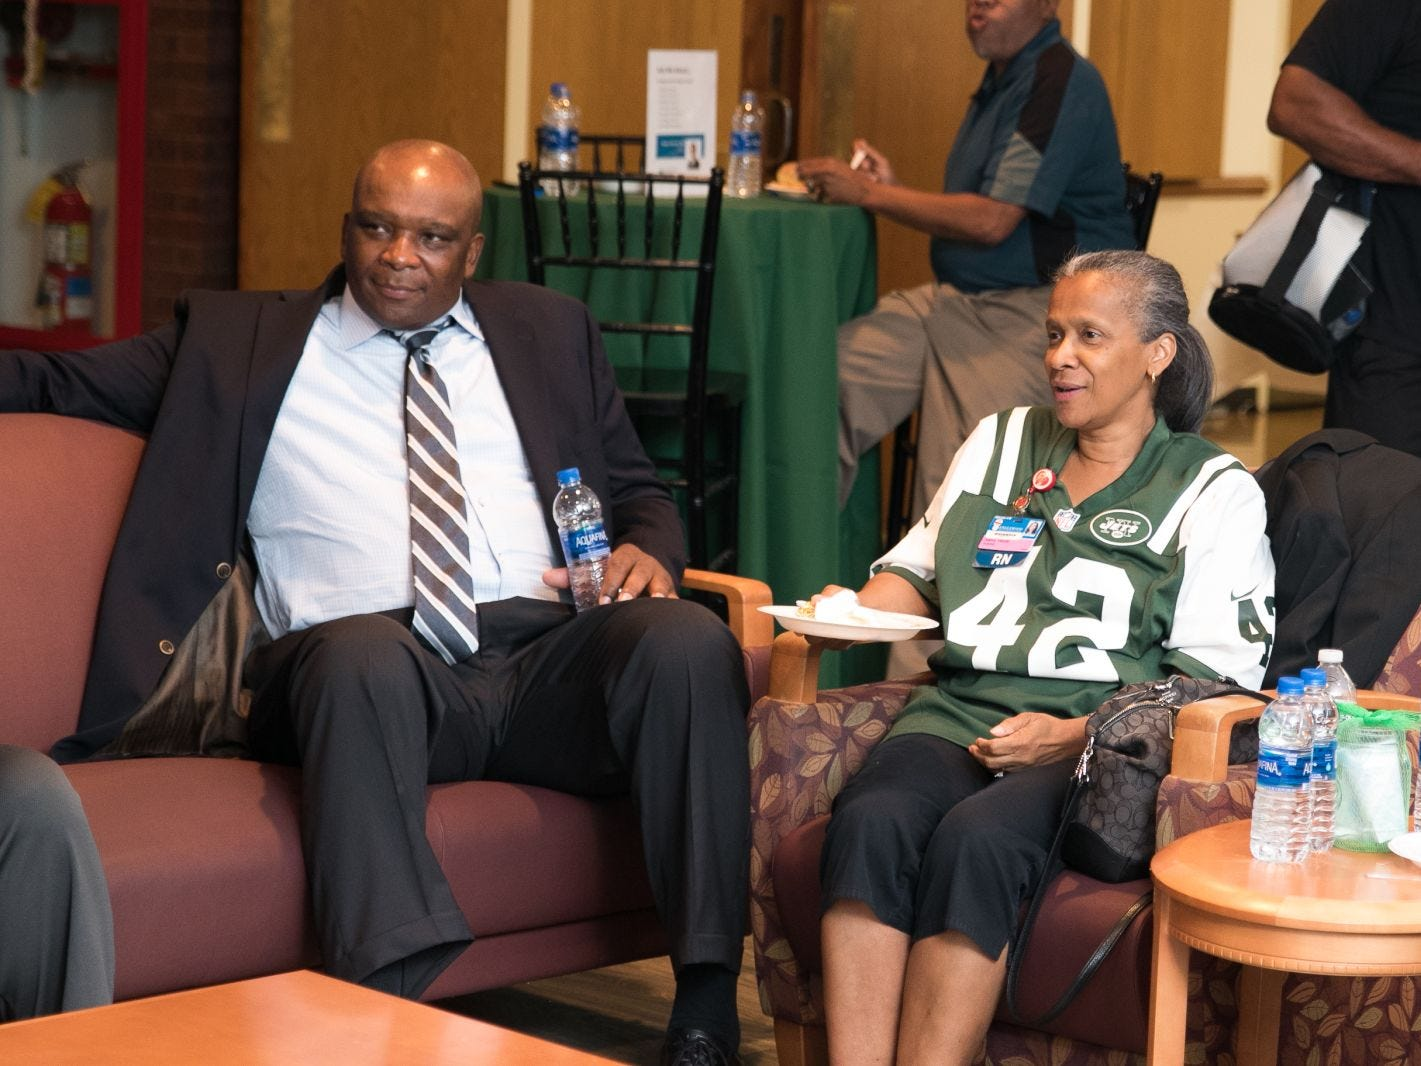 Former NY Giant Howard Cross, Nancy Harper. Englewood Health hosted its Men's Health and Football event with former Jets and Giants players and Don La Greca from ESPN radio. Attendees watched the Thursday night football game while receiving advice about staying healthy and tackling health problems early on. 09/20/2018